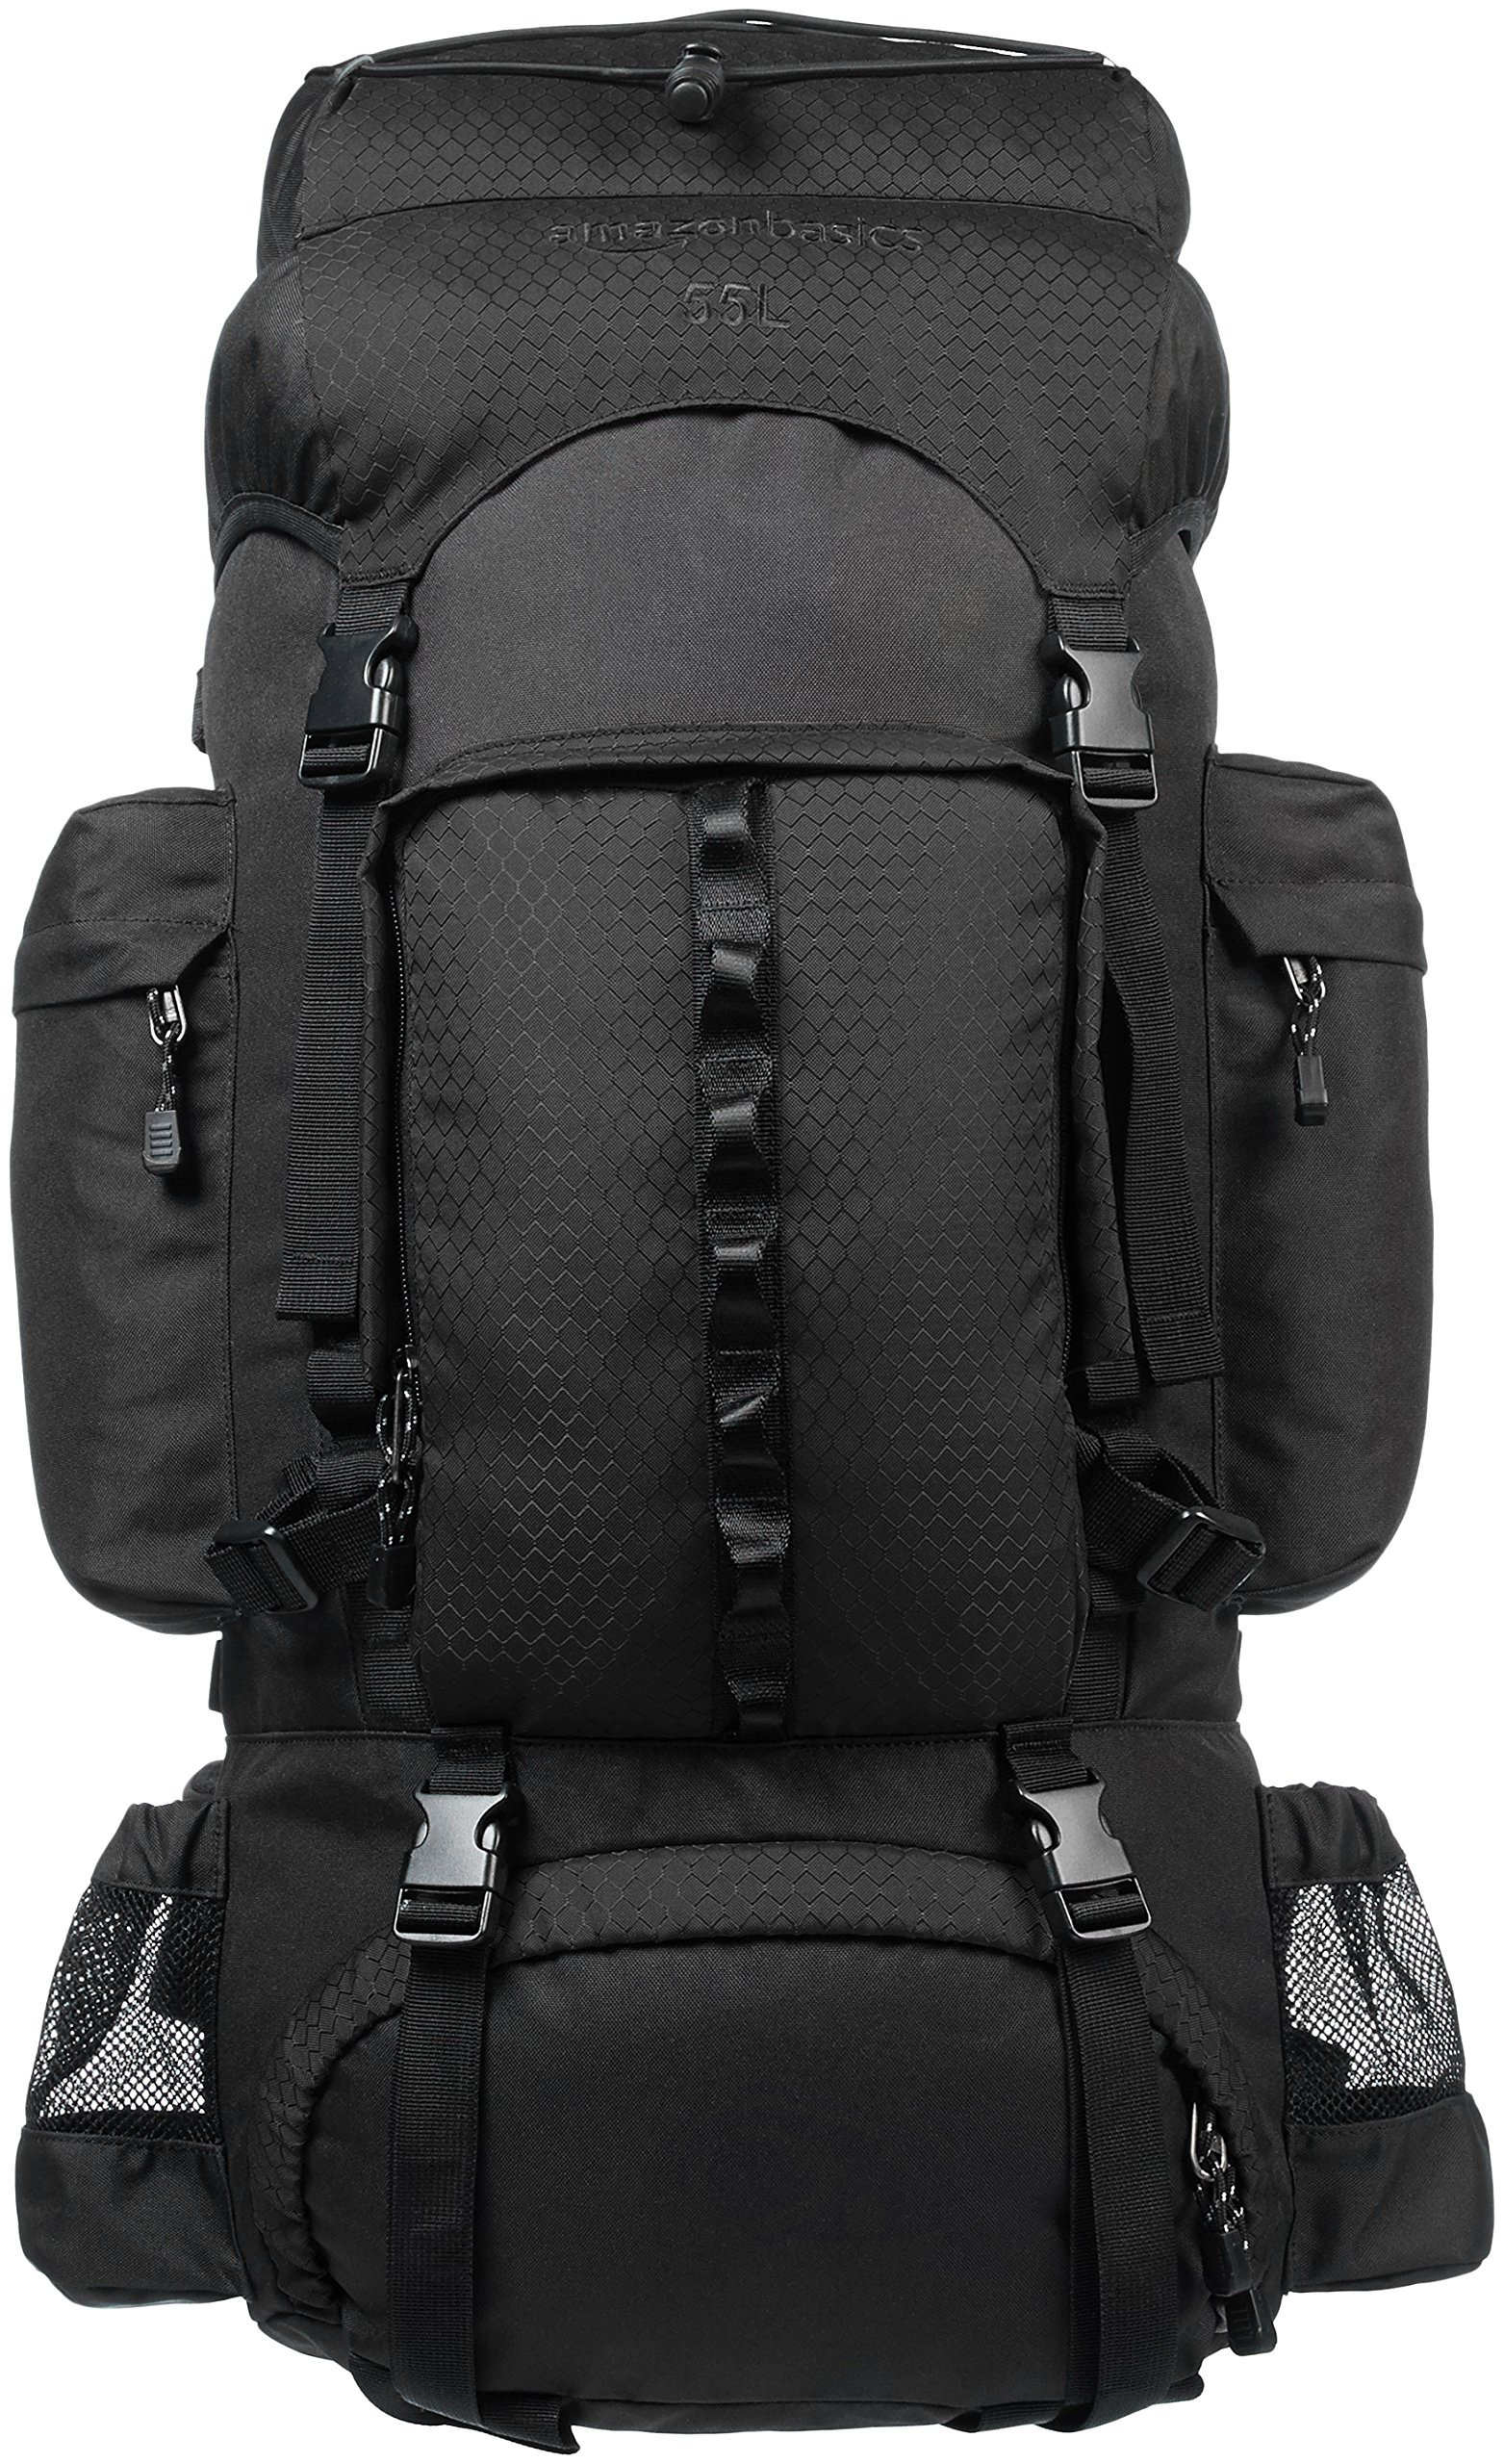 AmazonBasics Internal Frame Hiking Camping Rucksack Backpack with Rainfly - 15 x 6.5 x 30 Inches, 55 Liters, Black by AmazonBasics